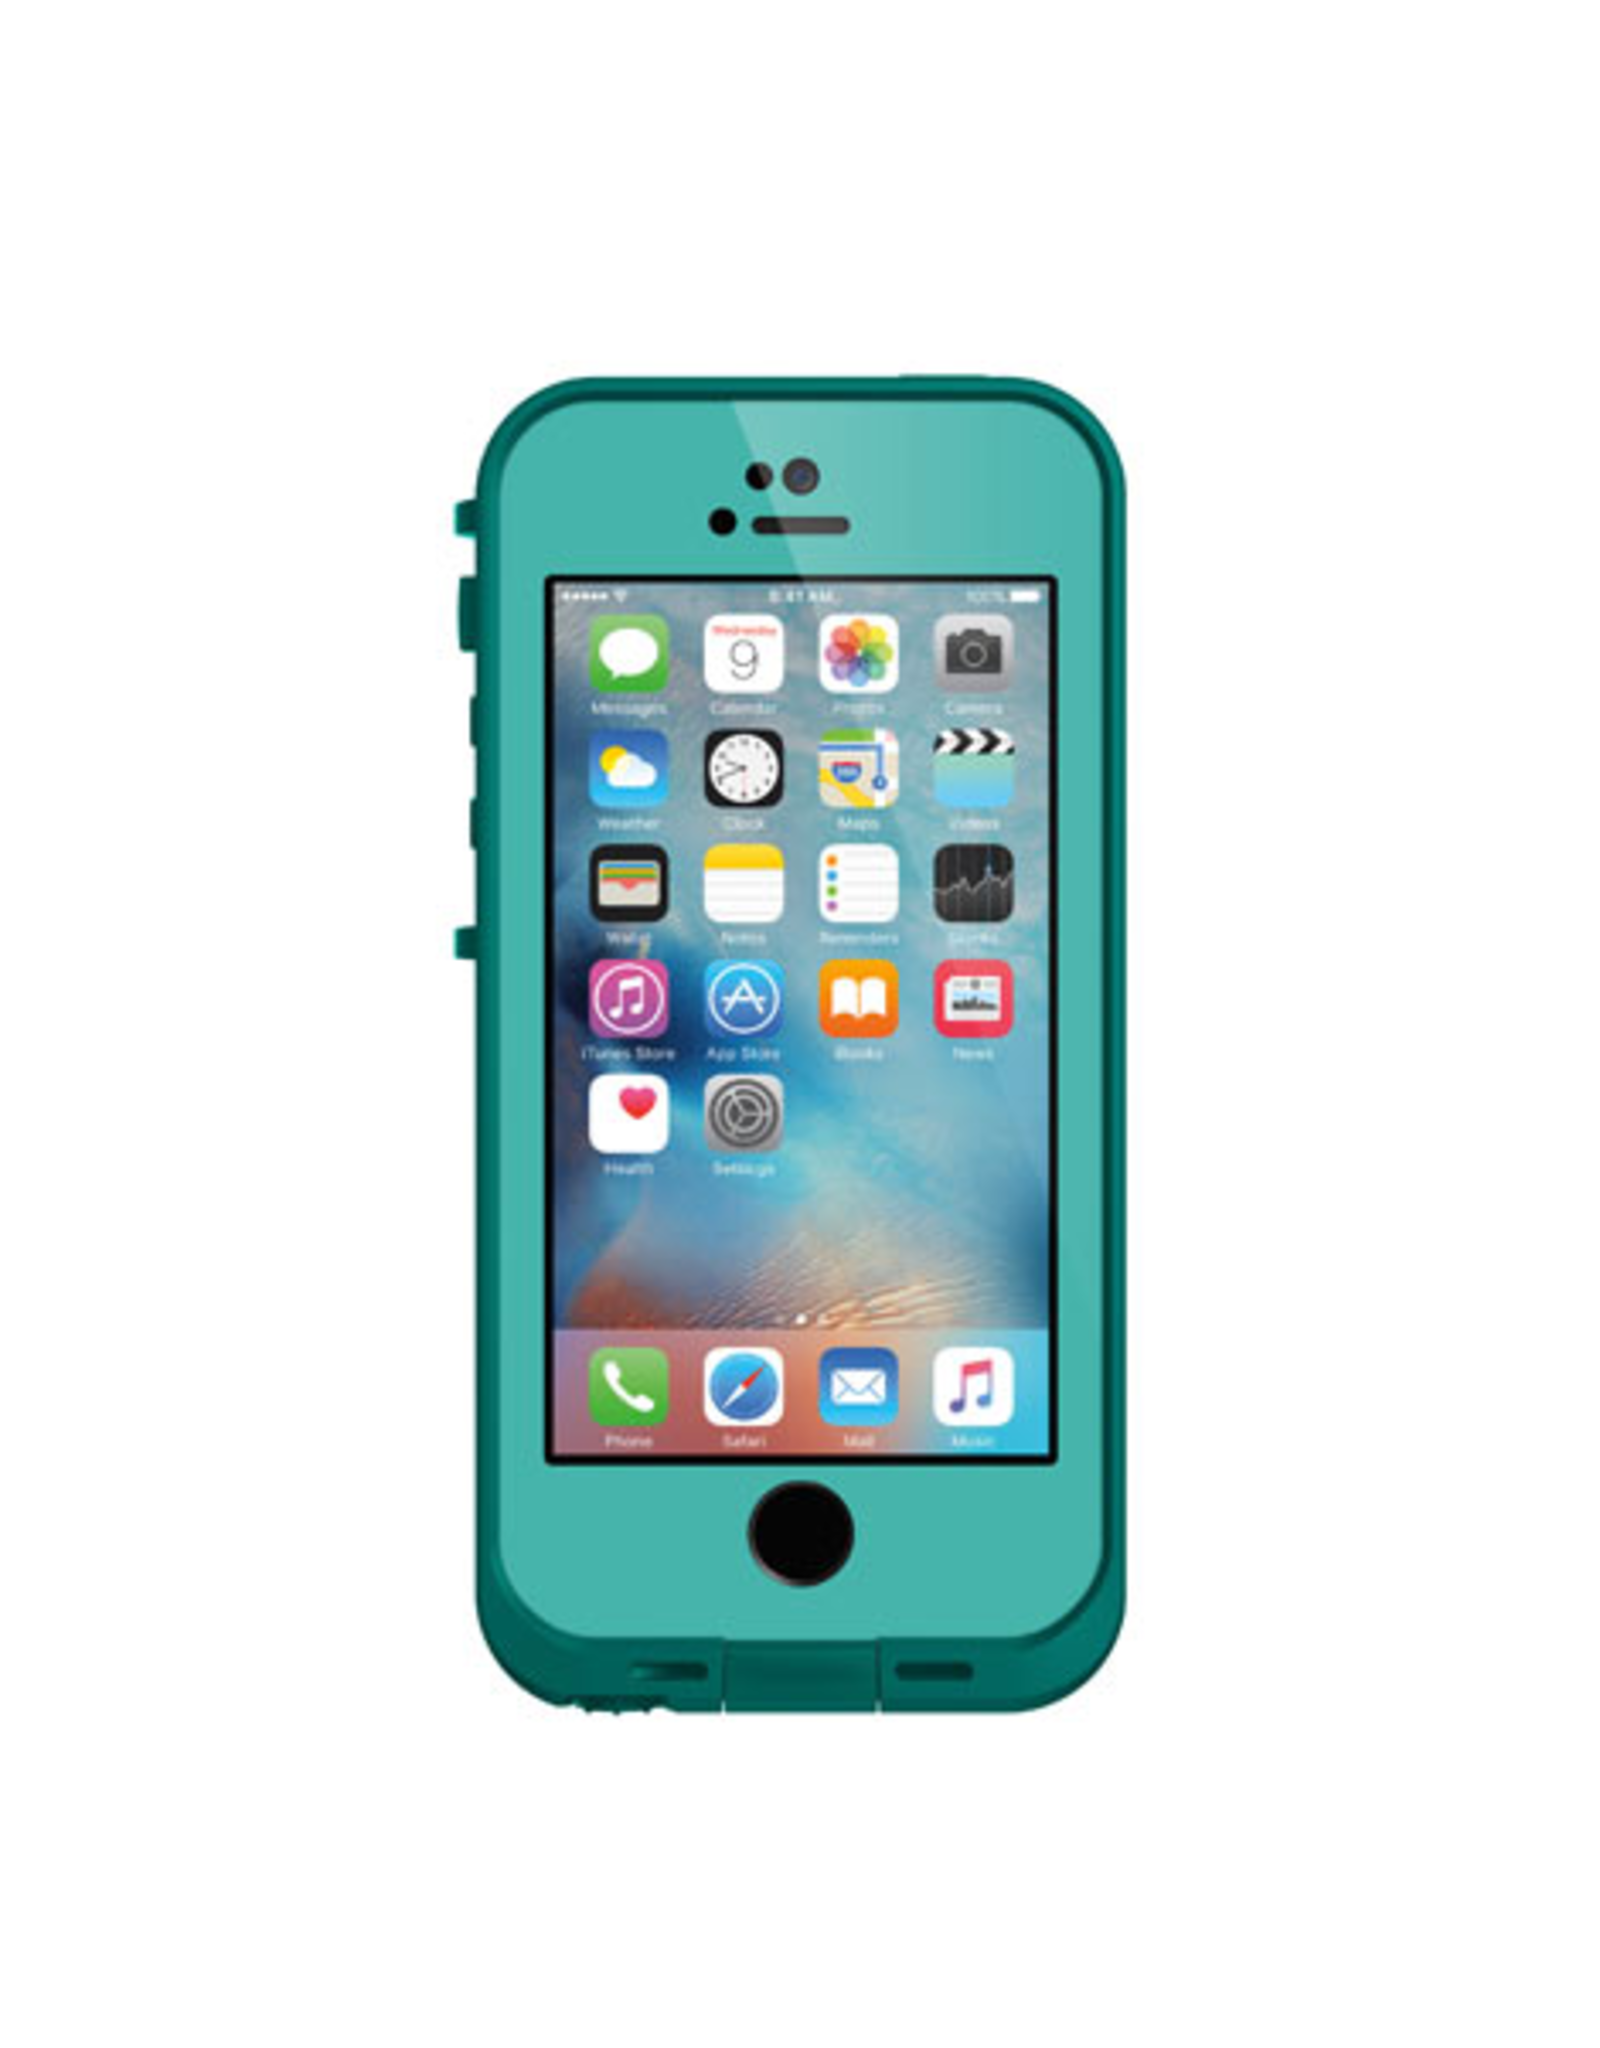 Lifeproof LifeProof Fre Case suits iPhone 5/5S/SE - Dark Teal/Teal